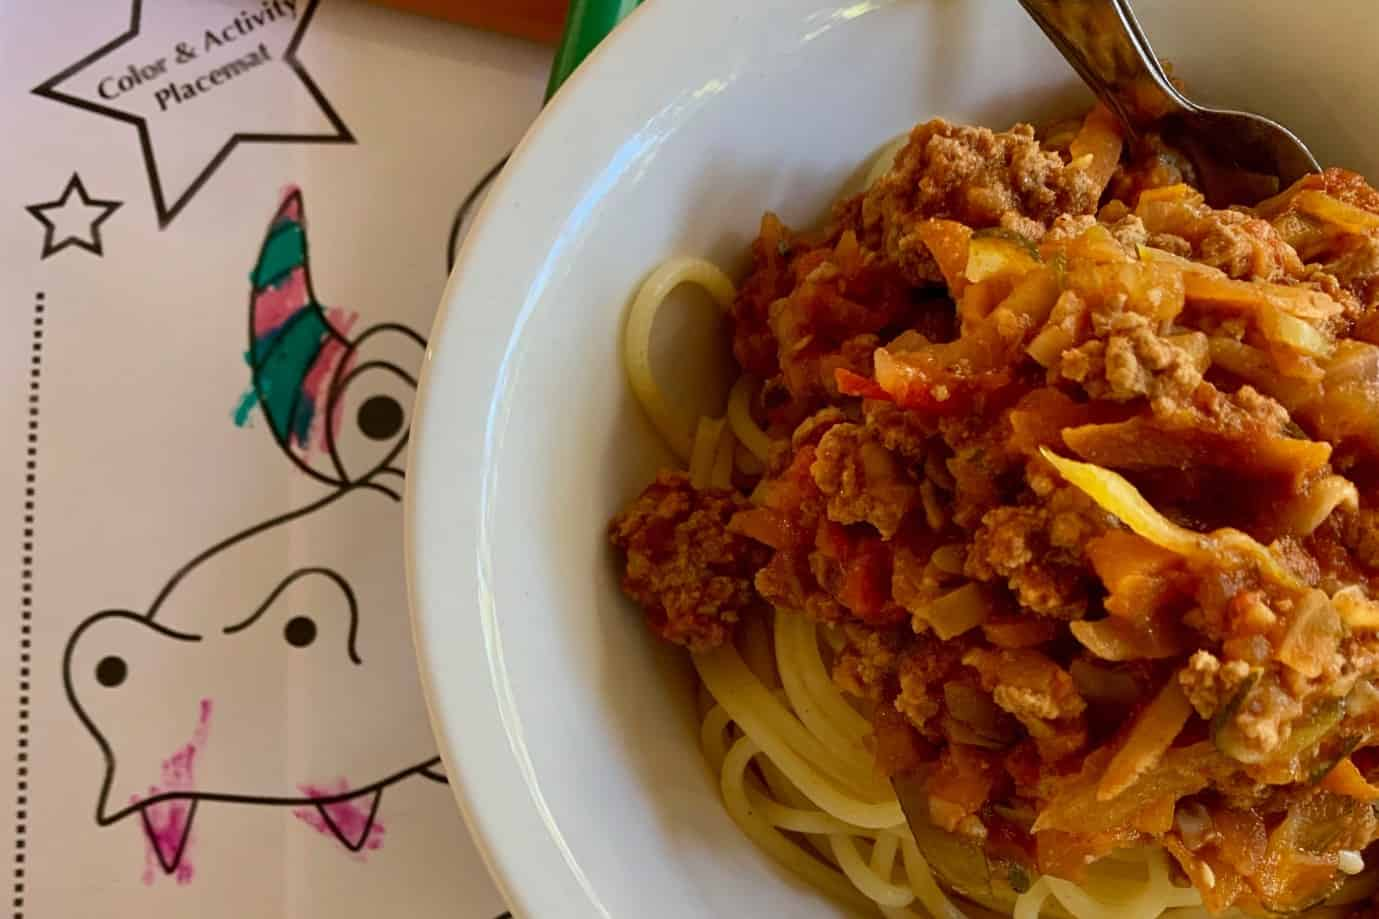 'Fully Loaded' (with veggies) Spaghetti Bolognese